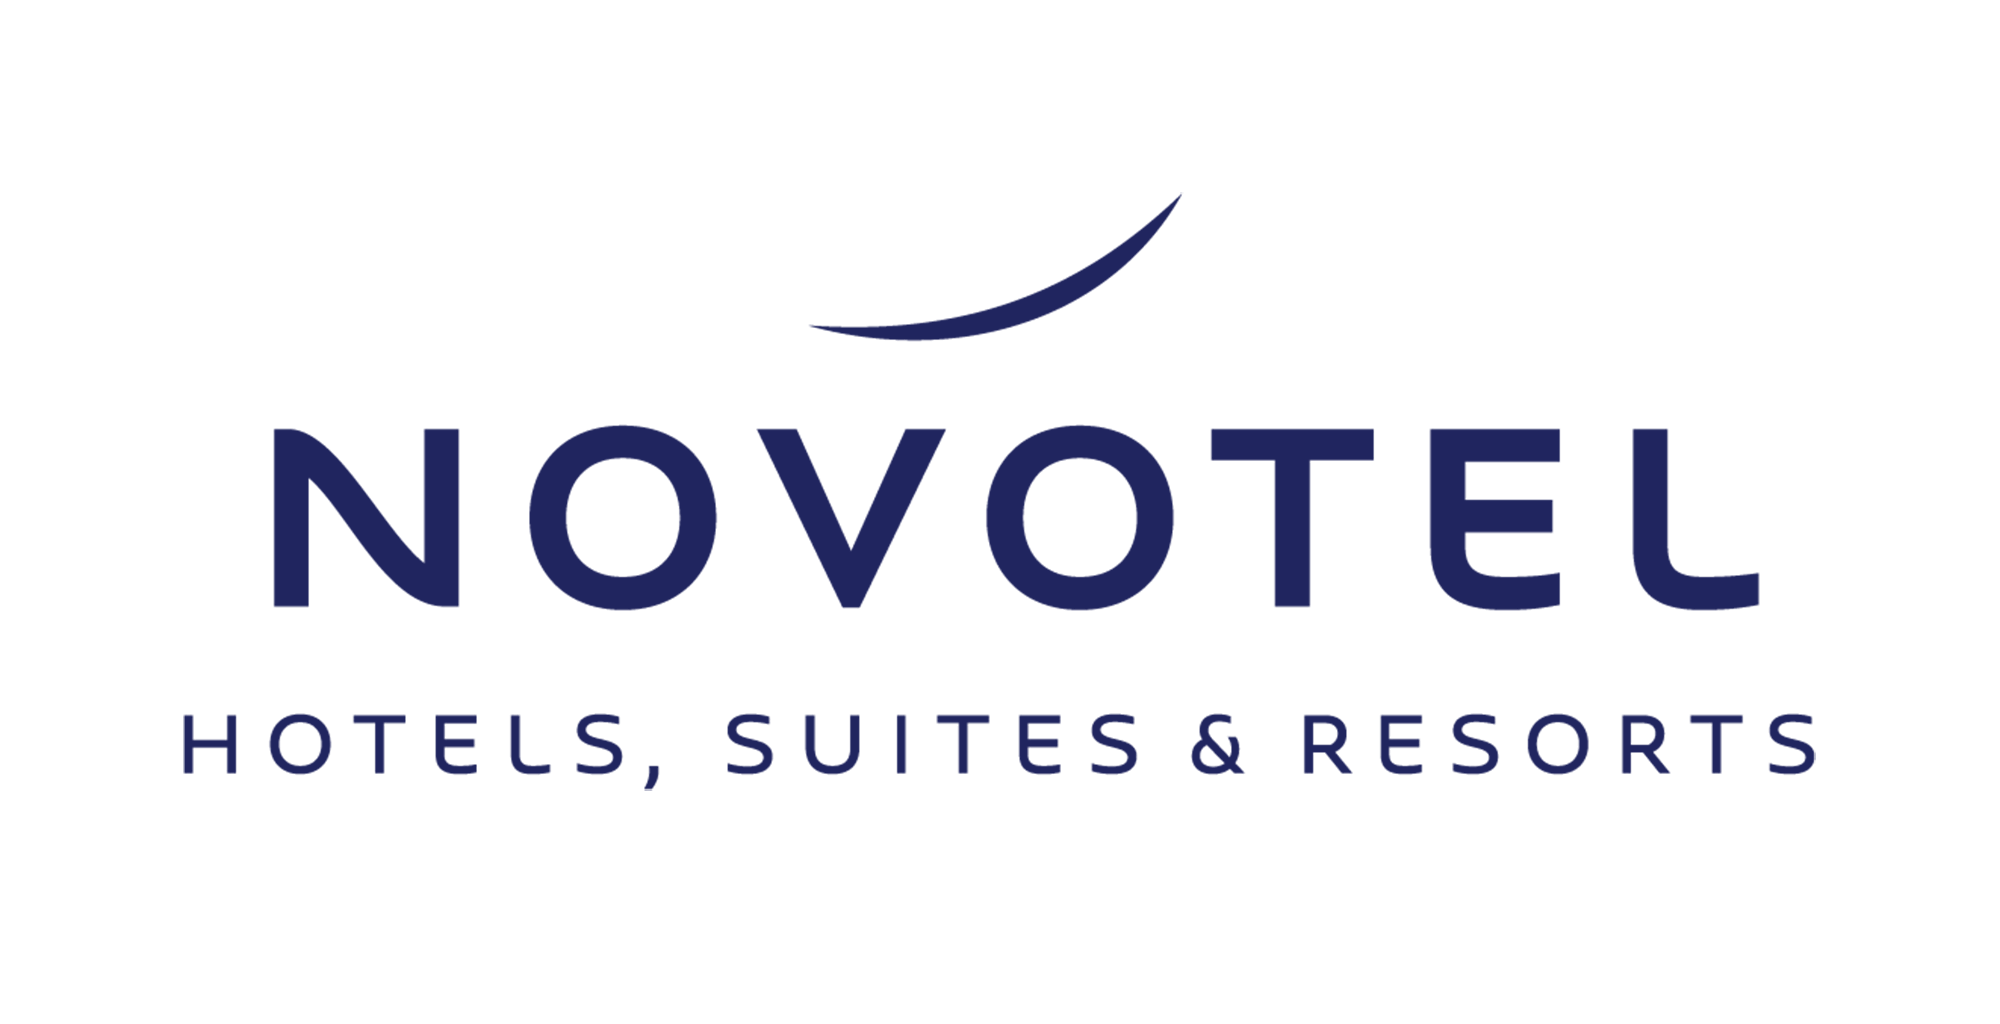 novotel hotel suites and resorts logo png